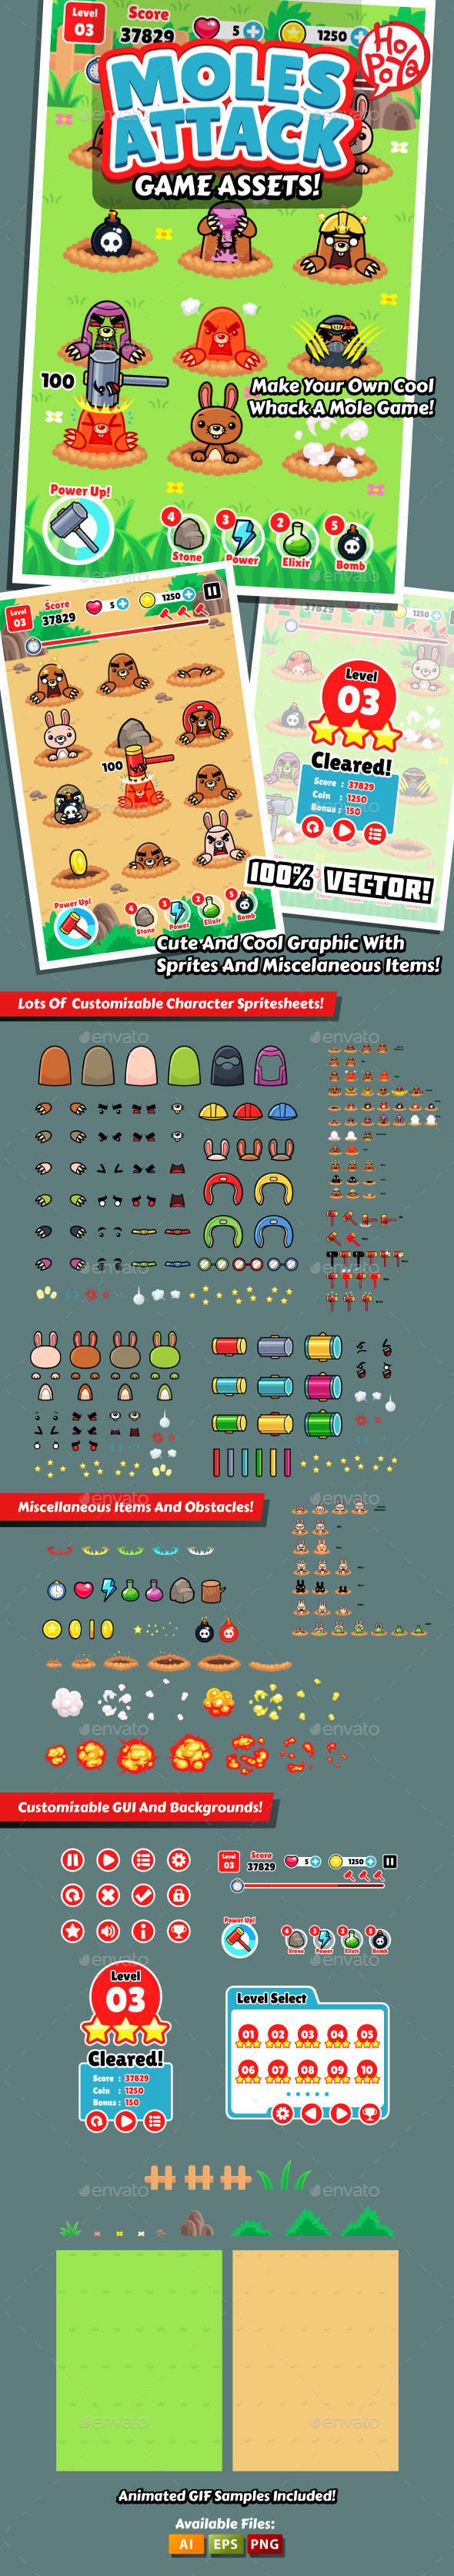 Moles Attack Game Assets - Game Kits Game Assets